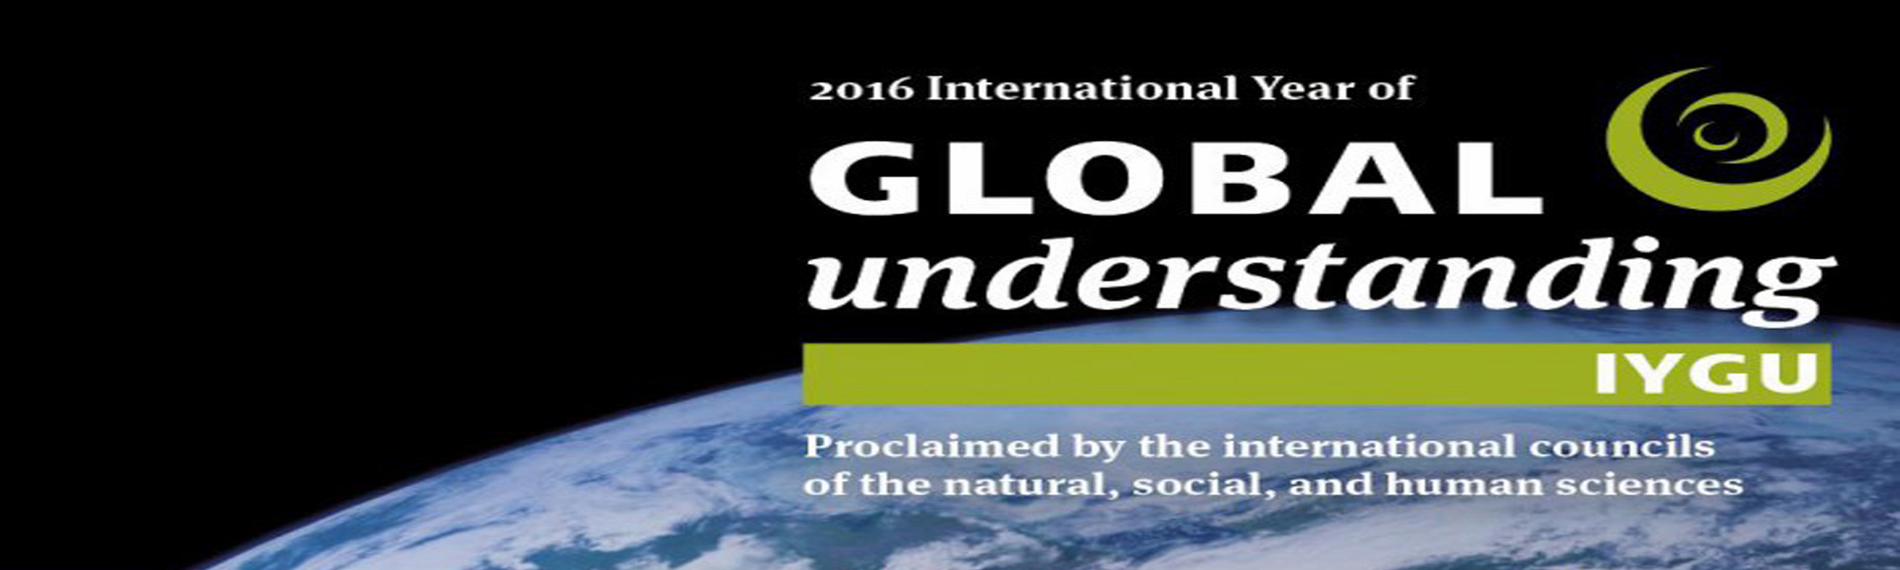 GLOBAL UNDERSTANDING IS AN ESSENTIAL HUMAN CONDITION OF THE 21ST CENTURY  http:/www.cipsh.net/web/news-114.htm